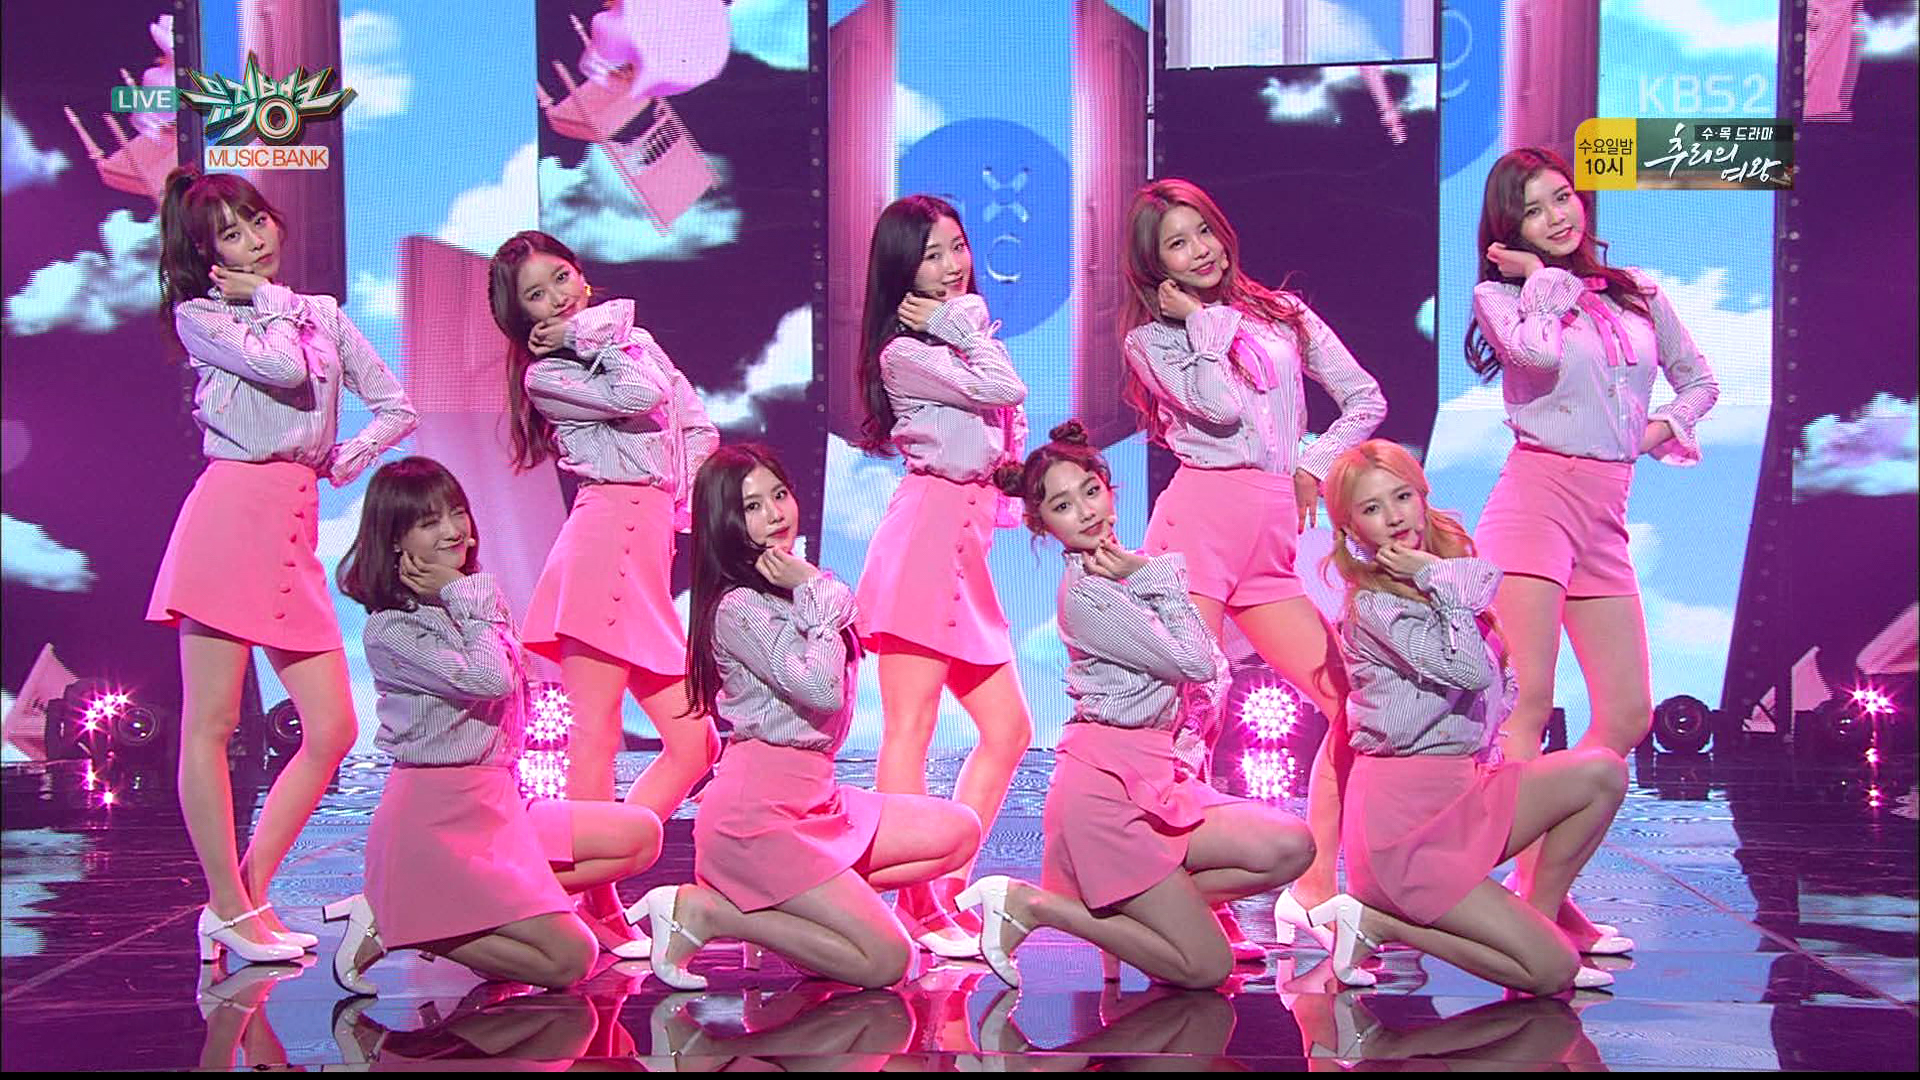 20170402.2035.3 gugudan - A Girl Like Me (Music Bank 2017.03.31) (JPOP.ru).jpg